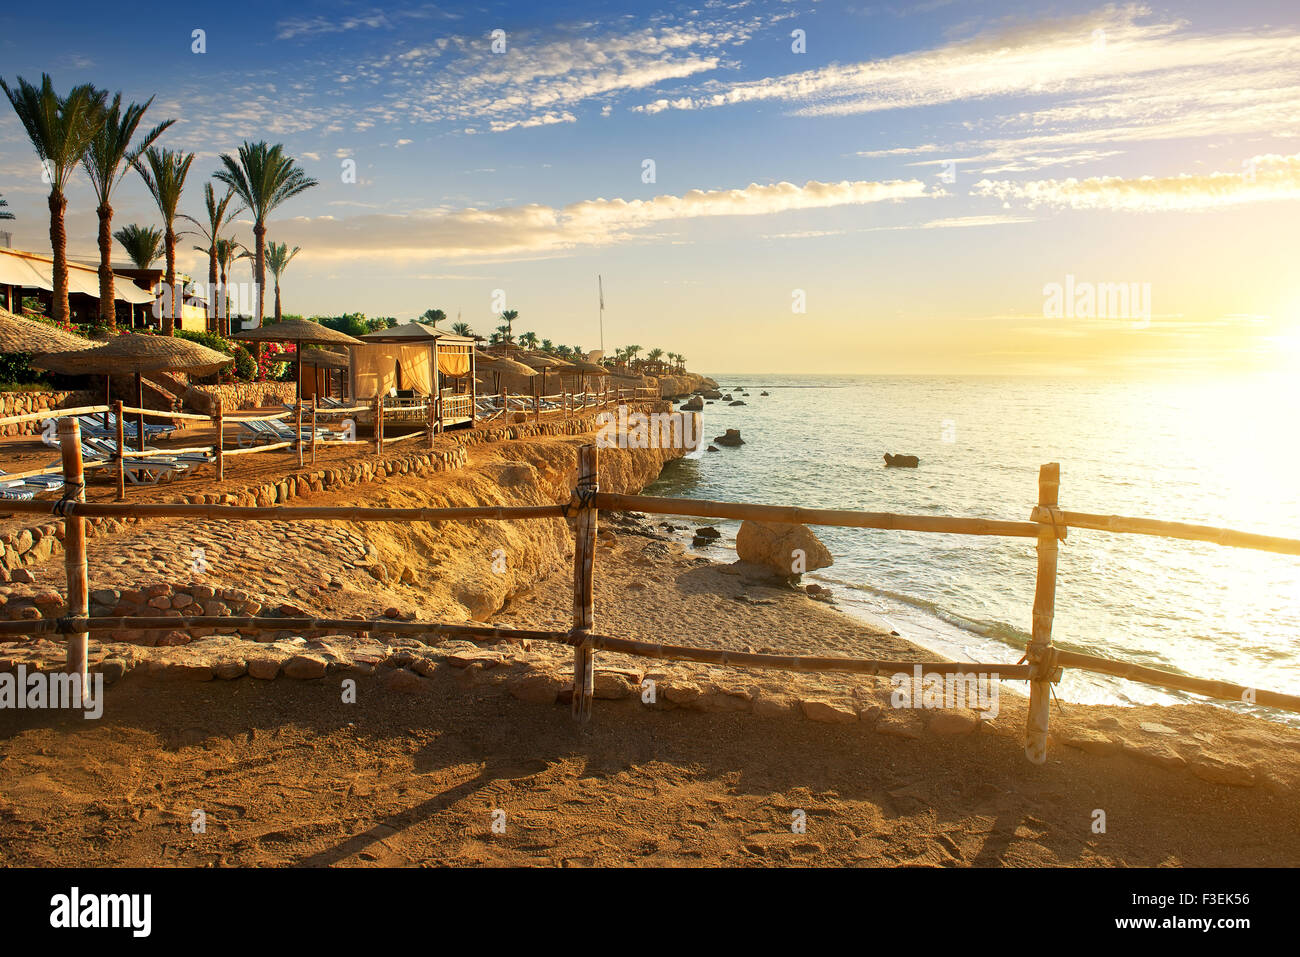 Sandy beach in egyptian hotel at sunset - Stock Image